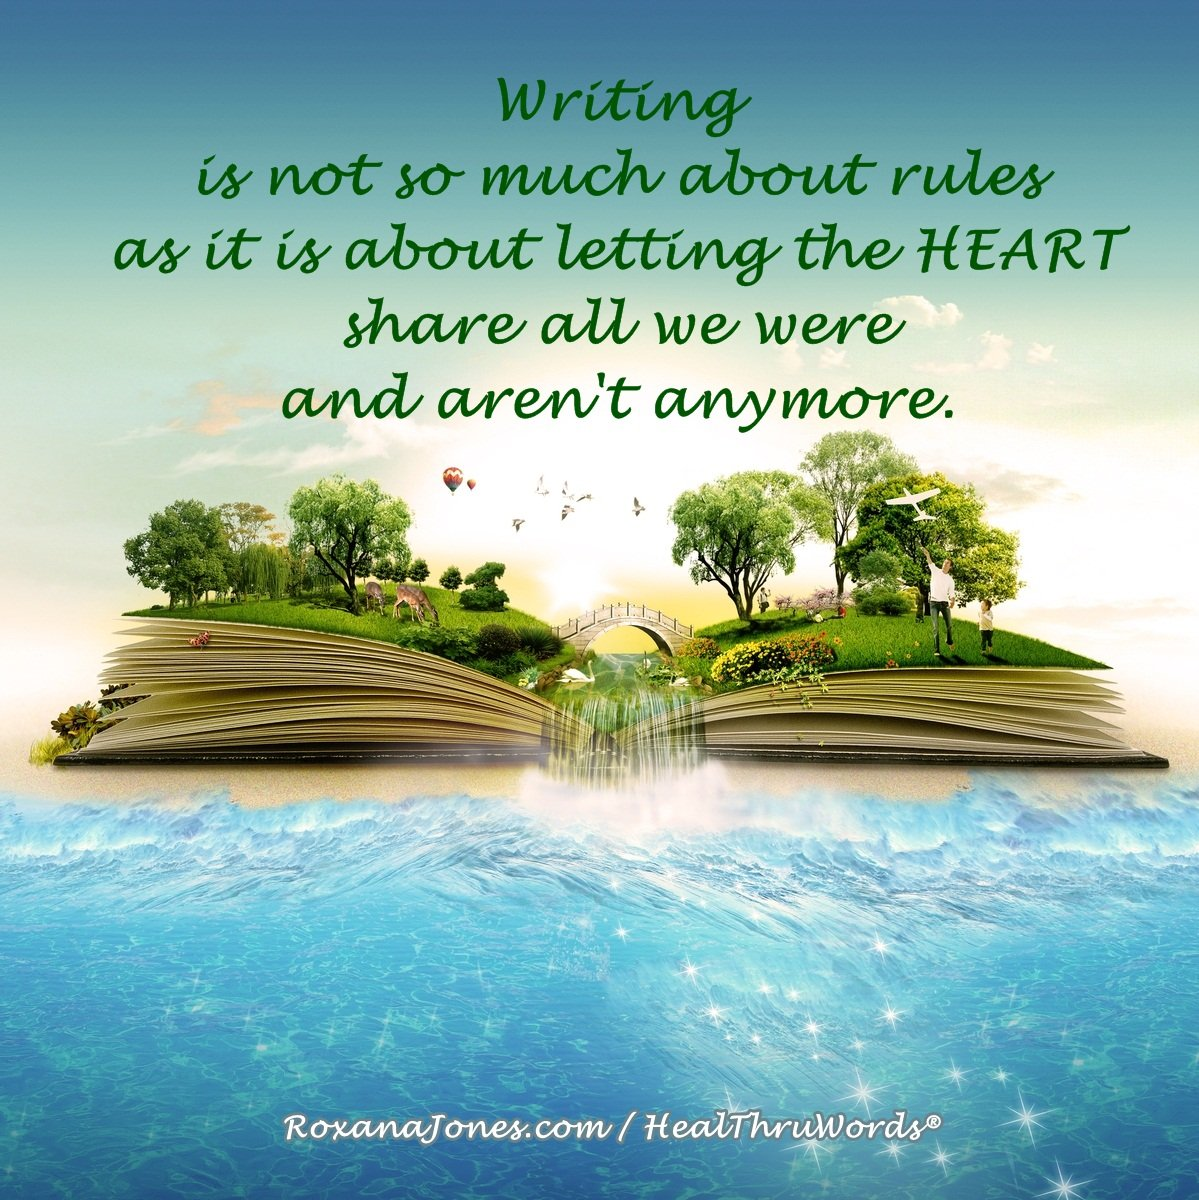 Inspirational Image: When the Heart Writes